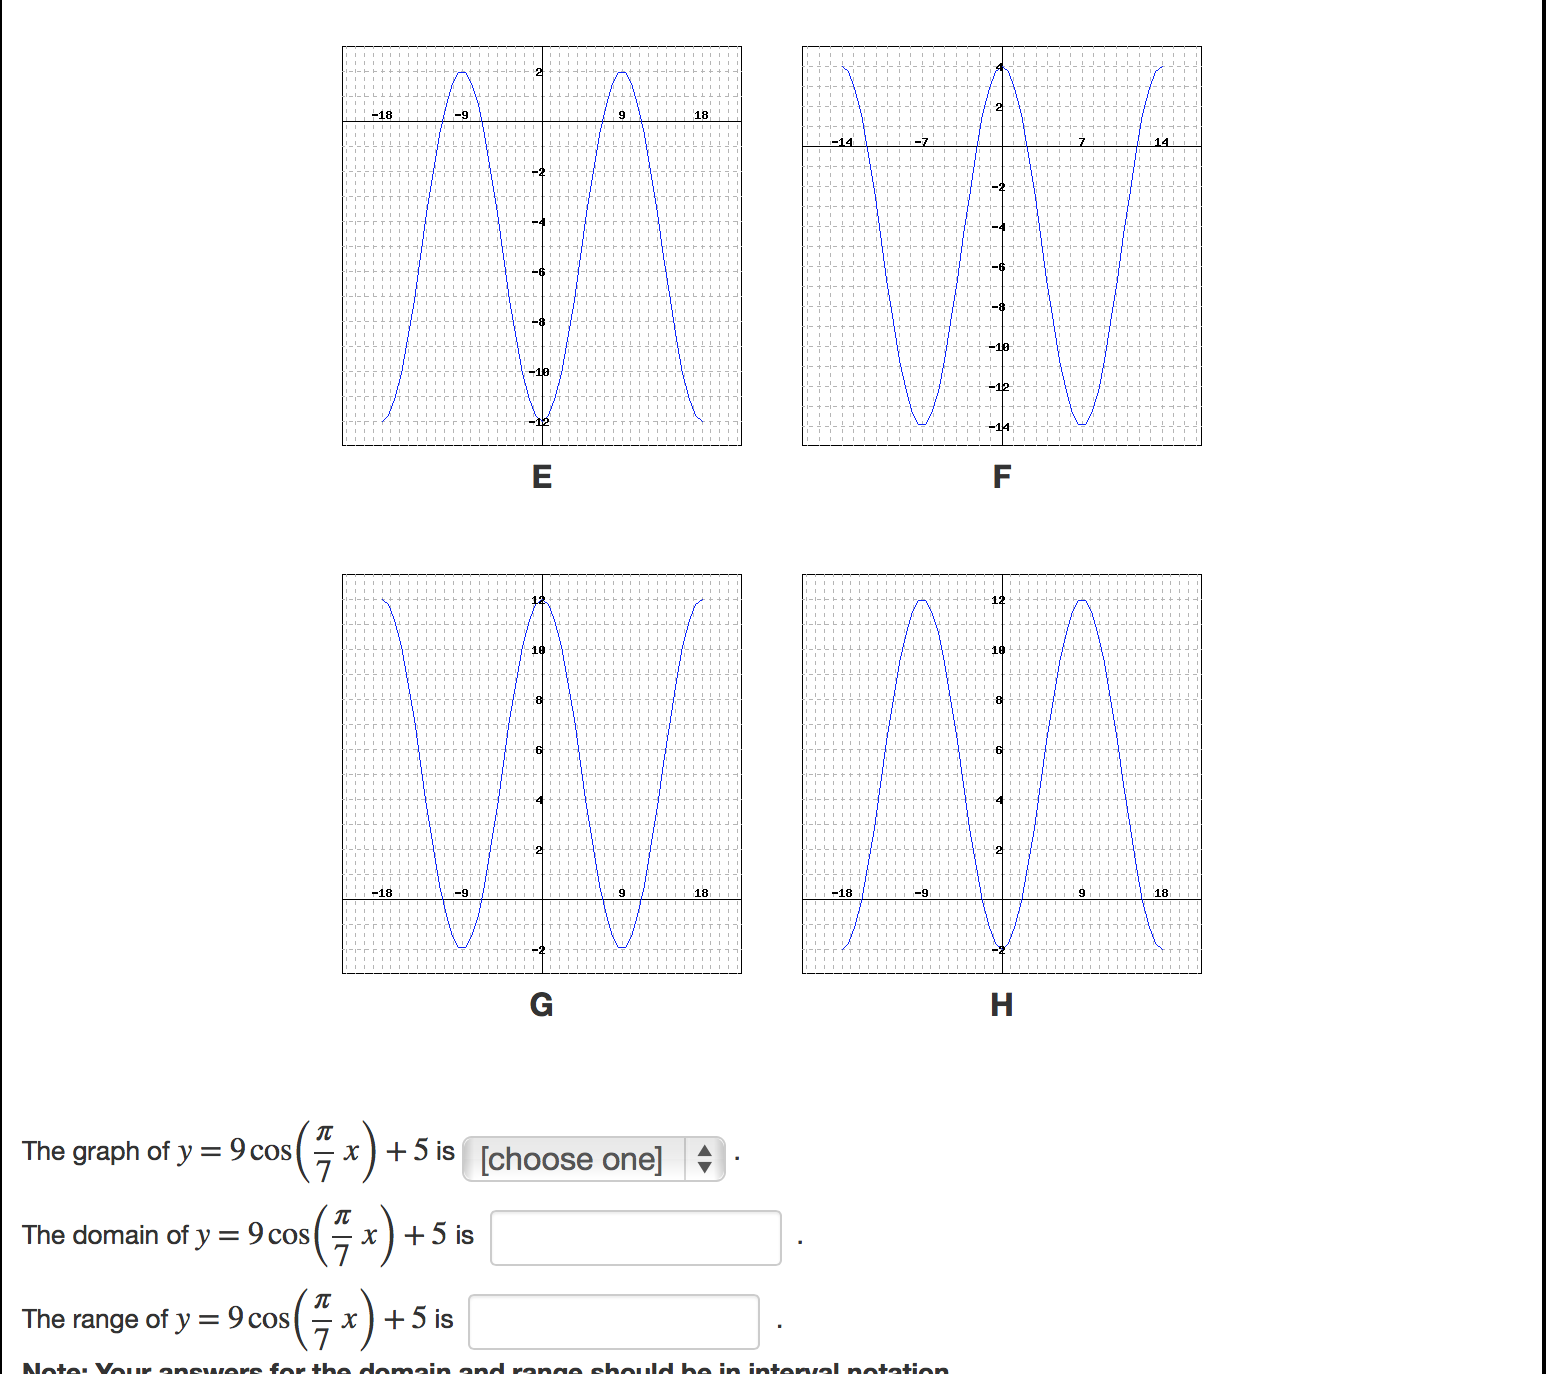 Domain And Range Inb Pages Graph At Least Two Cycles Of The Given Function  And Use Your Graph To Determine The